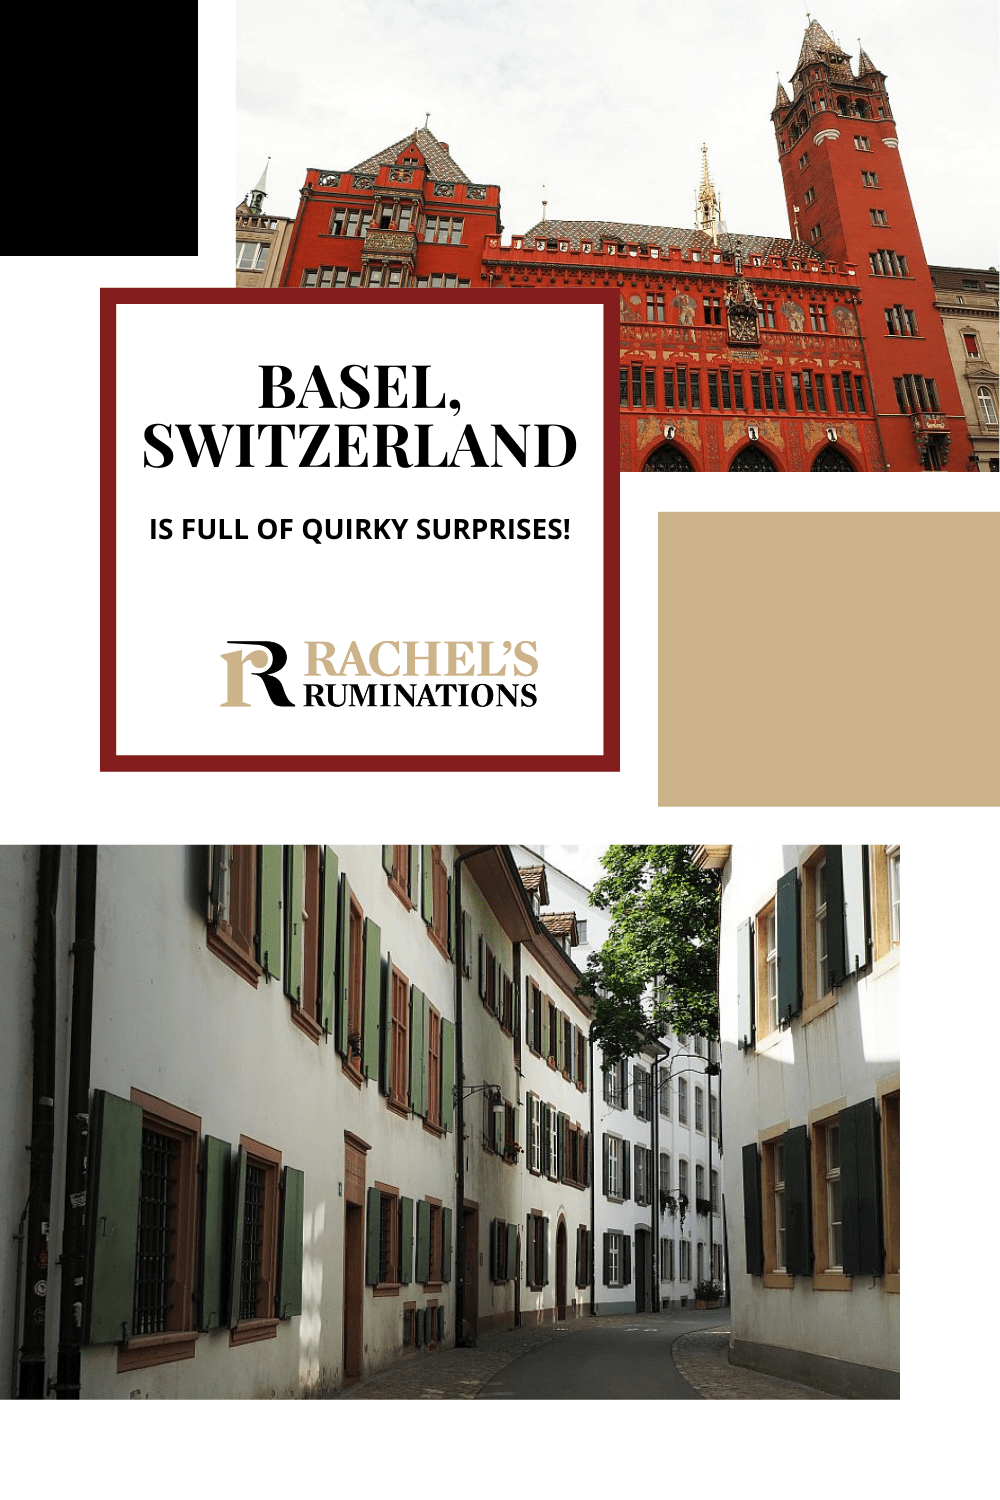 Basel, Switzerland has a charming old town with quirkiness lurking around every corner! Ferries with no motor, funny fountains, and more await you! via @rachelsruminations